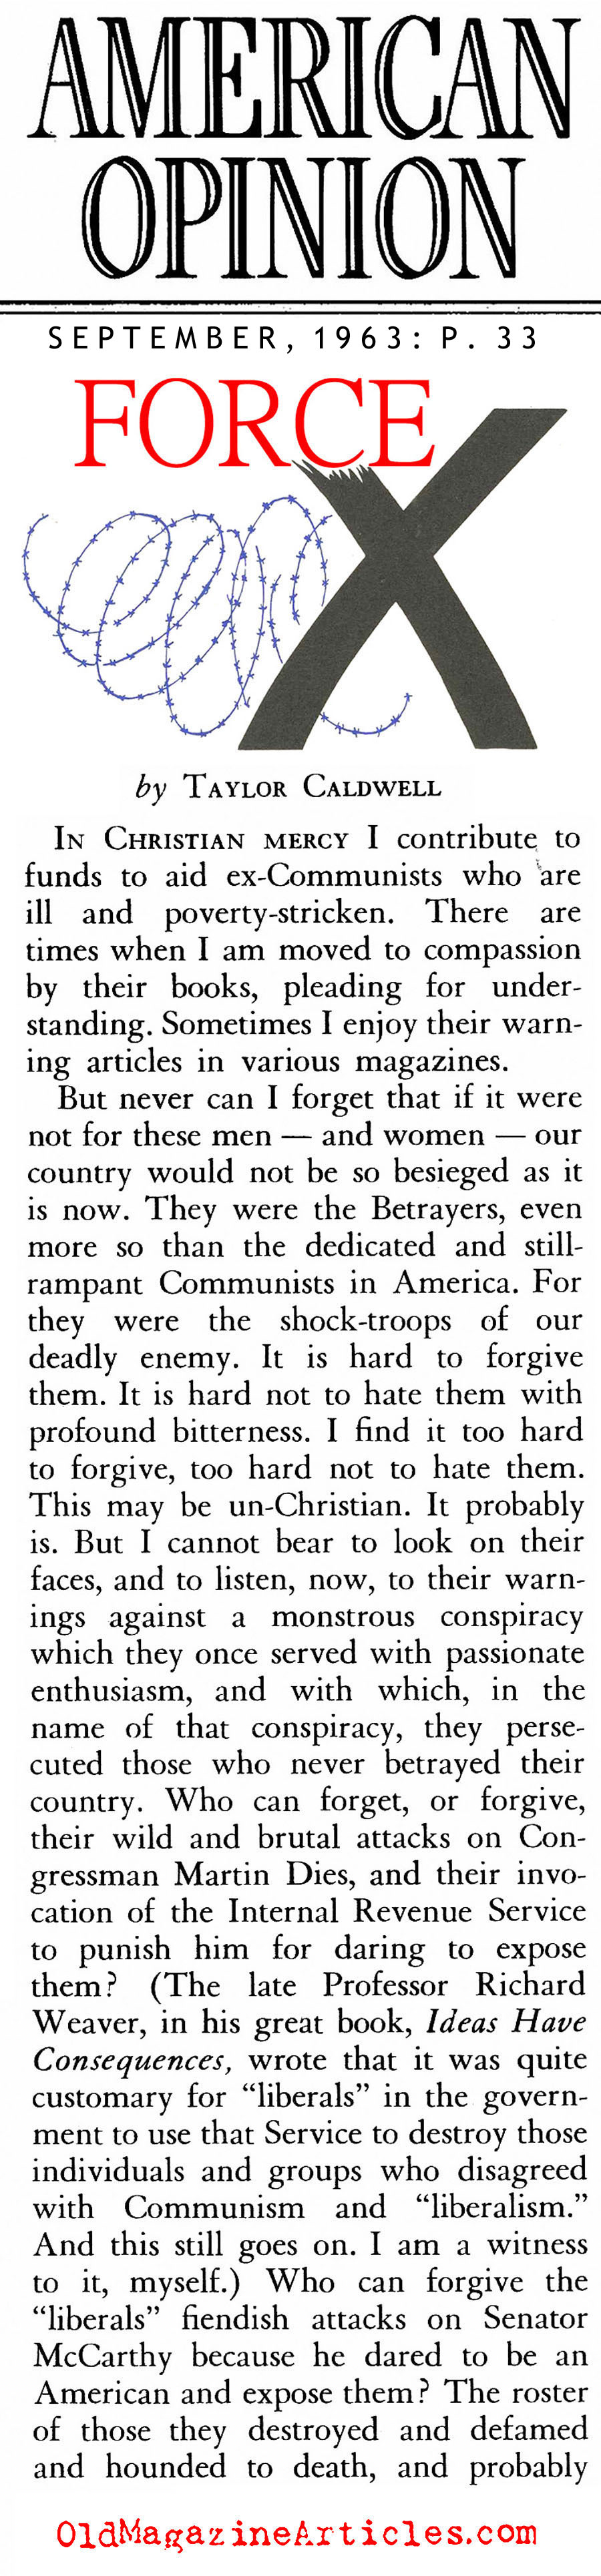 Rejecting Socialism During the Depression (American Opinion, 1963)